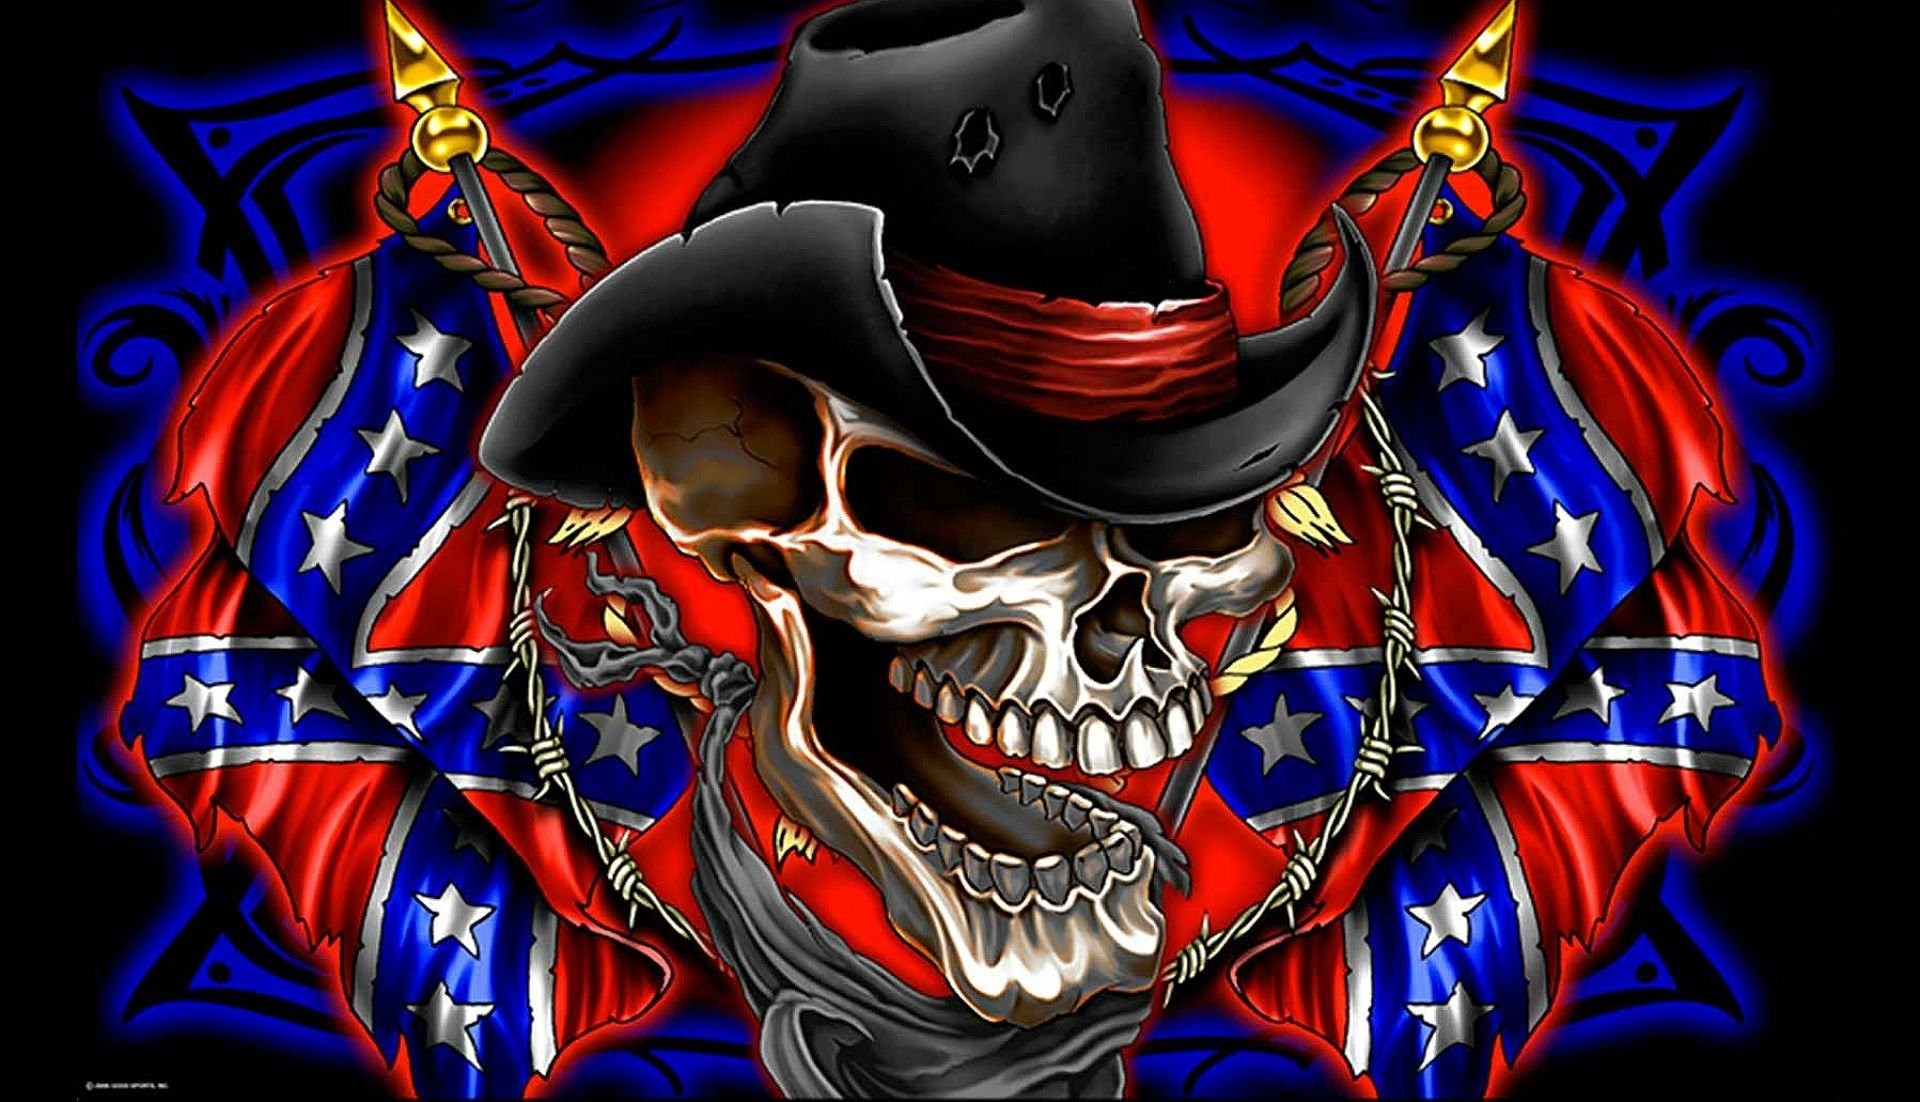 1920x1102 confederate flag hd widescreen wallpapers backgrounds | ololoshenka |  Pinterest | Hd widescreen wallpapers, Widescreen wallpaper and Wallpaper  backgrounds